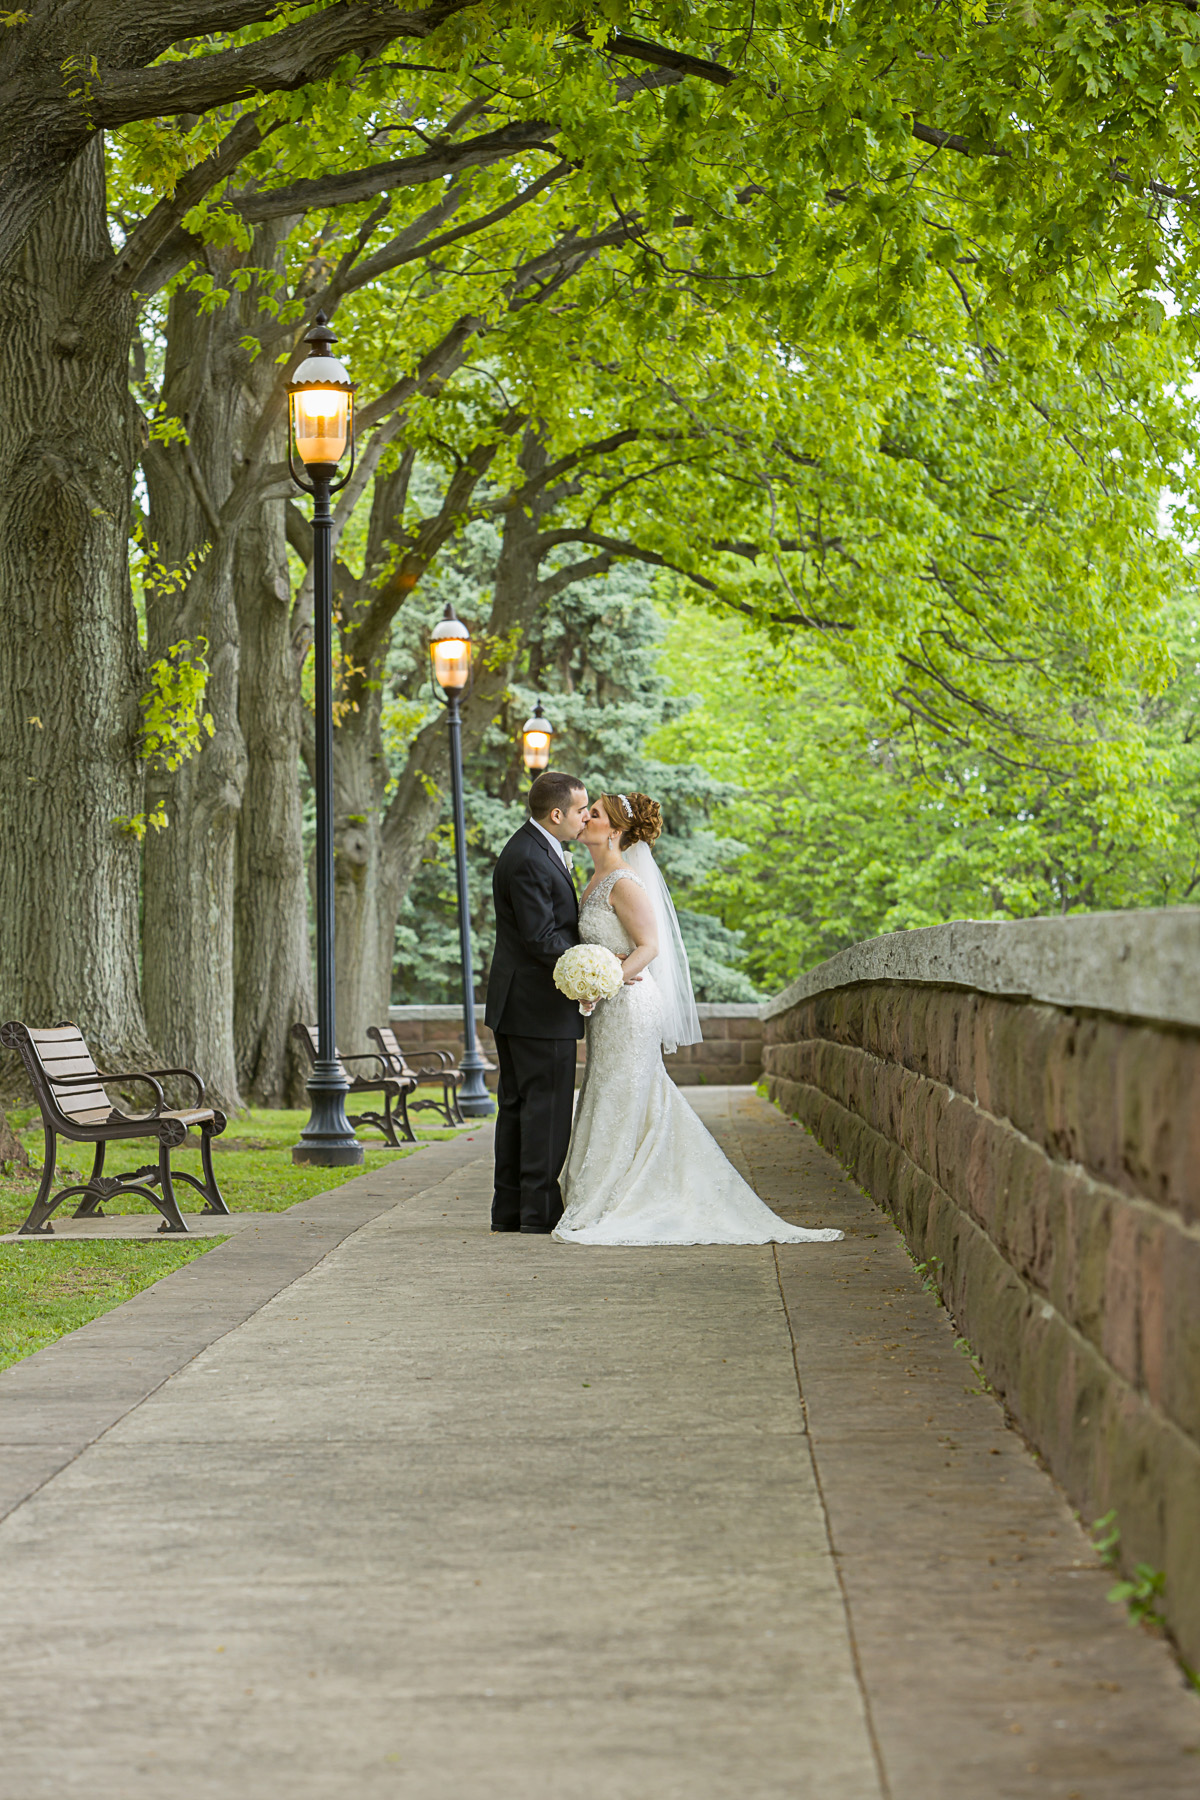 Michelle & Anthony Gabriele | New Jersey Wedding | David Eric Studio Of Photography